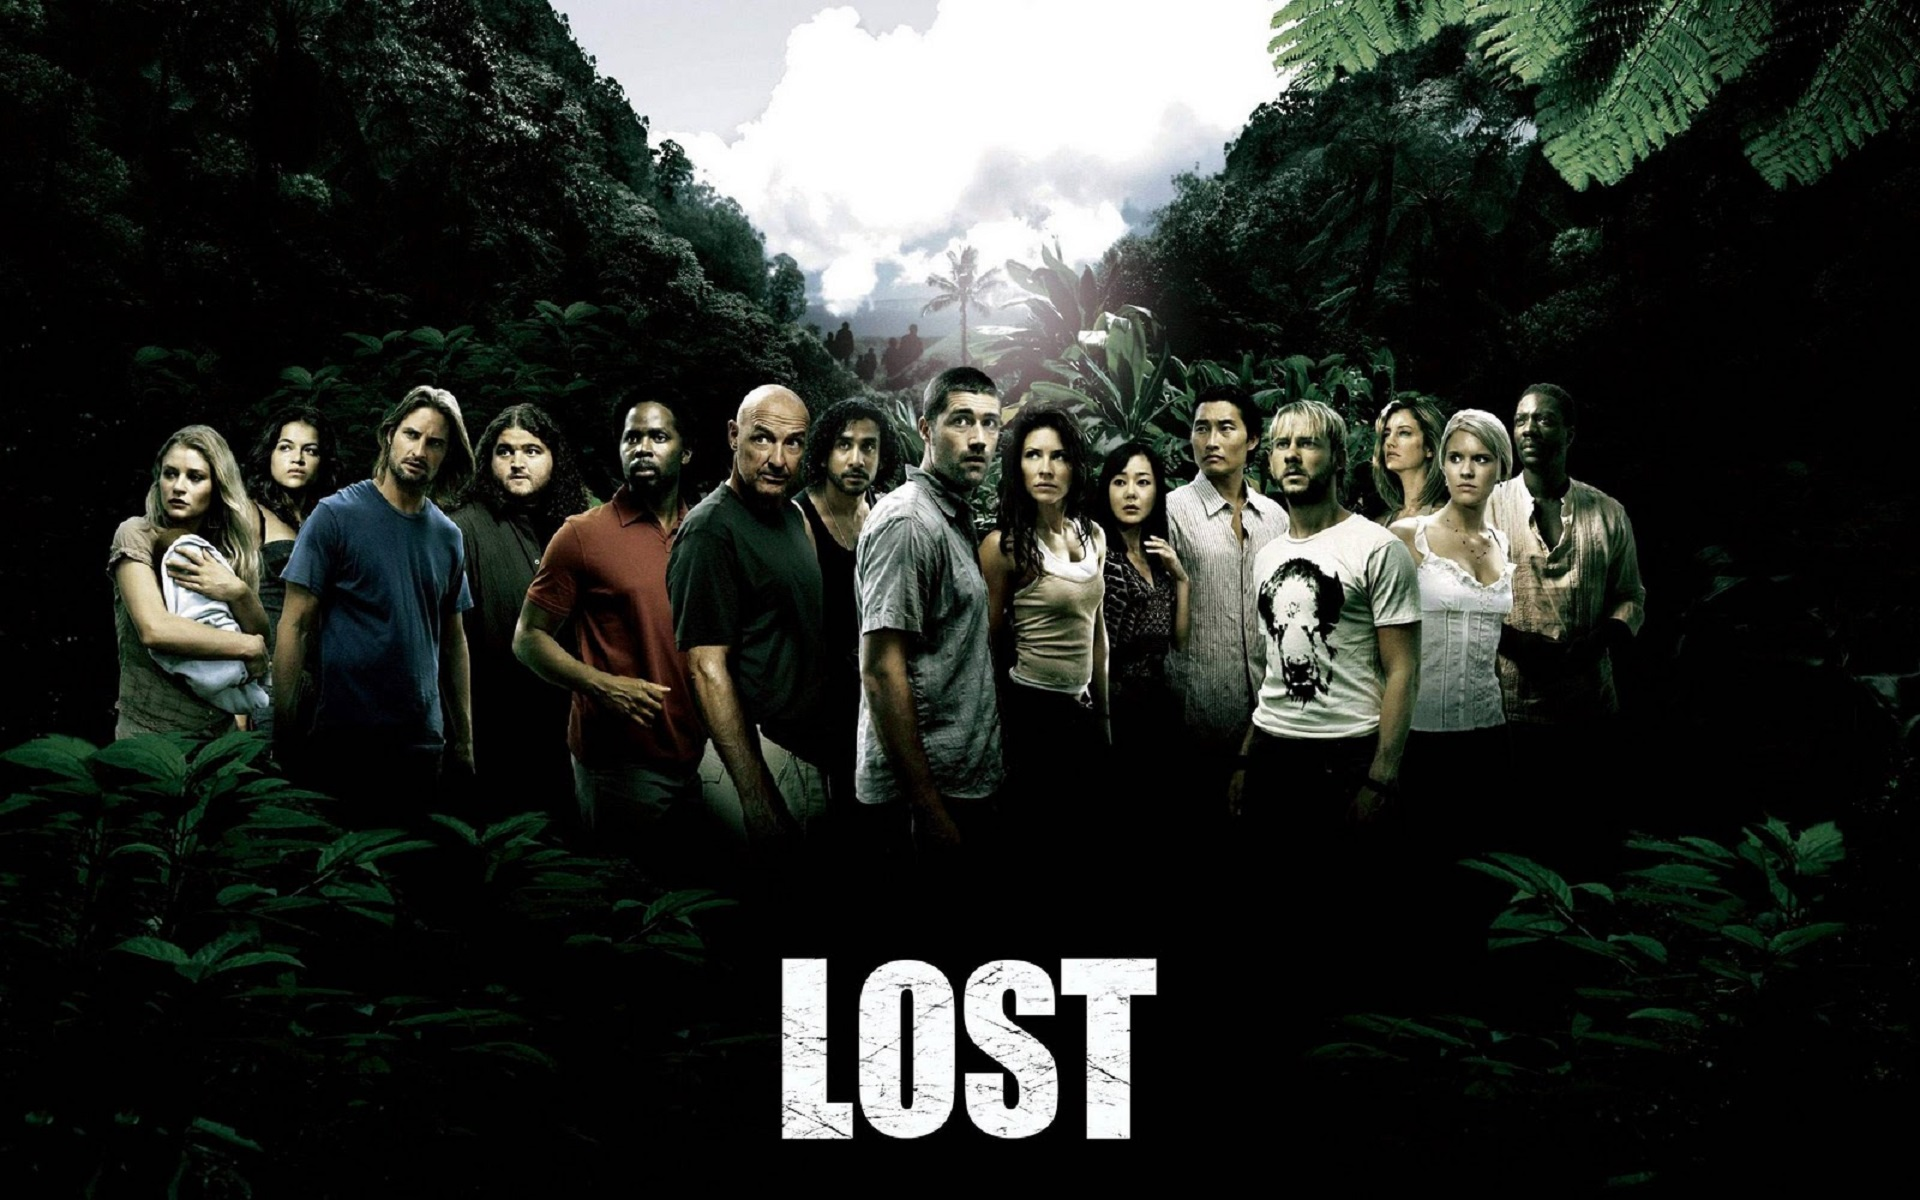 lost tv series wallpaper background, wallpapers